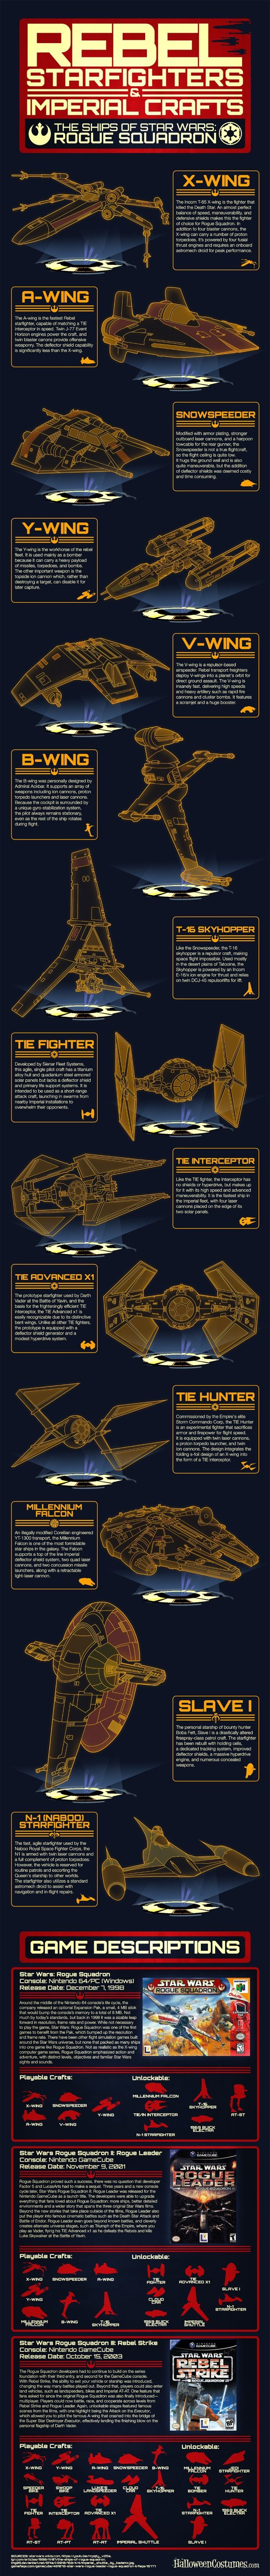 Rebel Starfighters and Imperial Craft: The Ships of Rogue Squadron #infographic